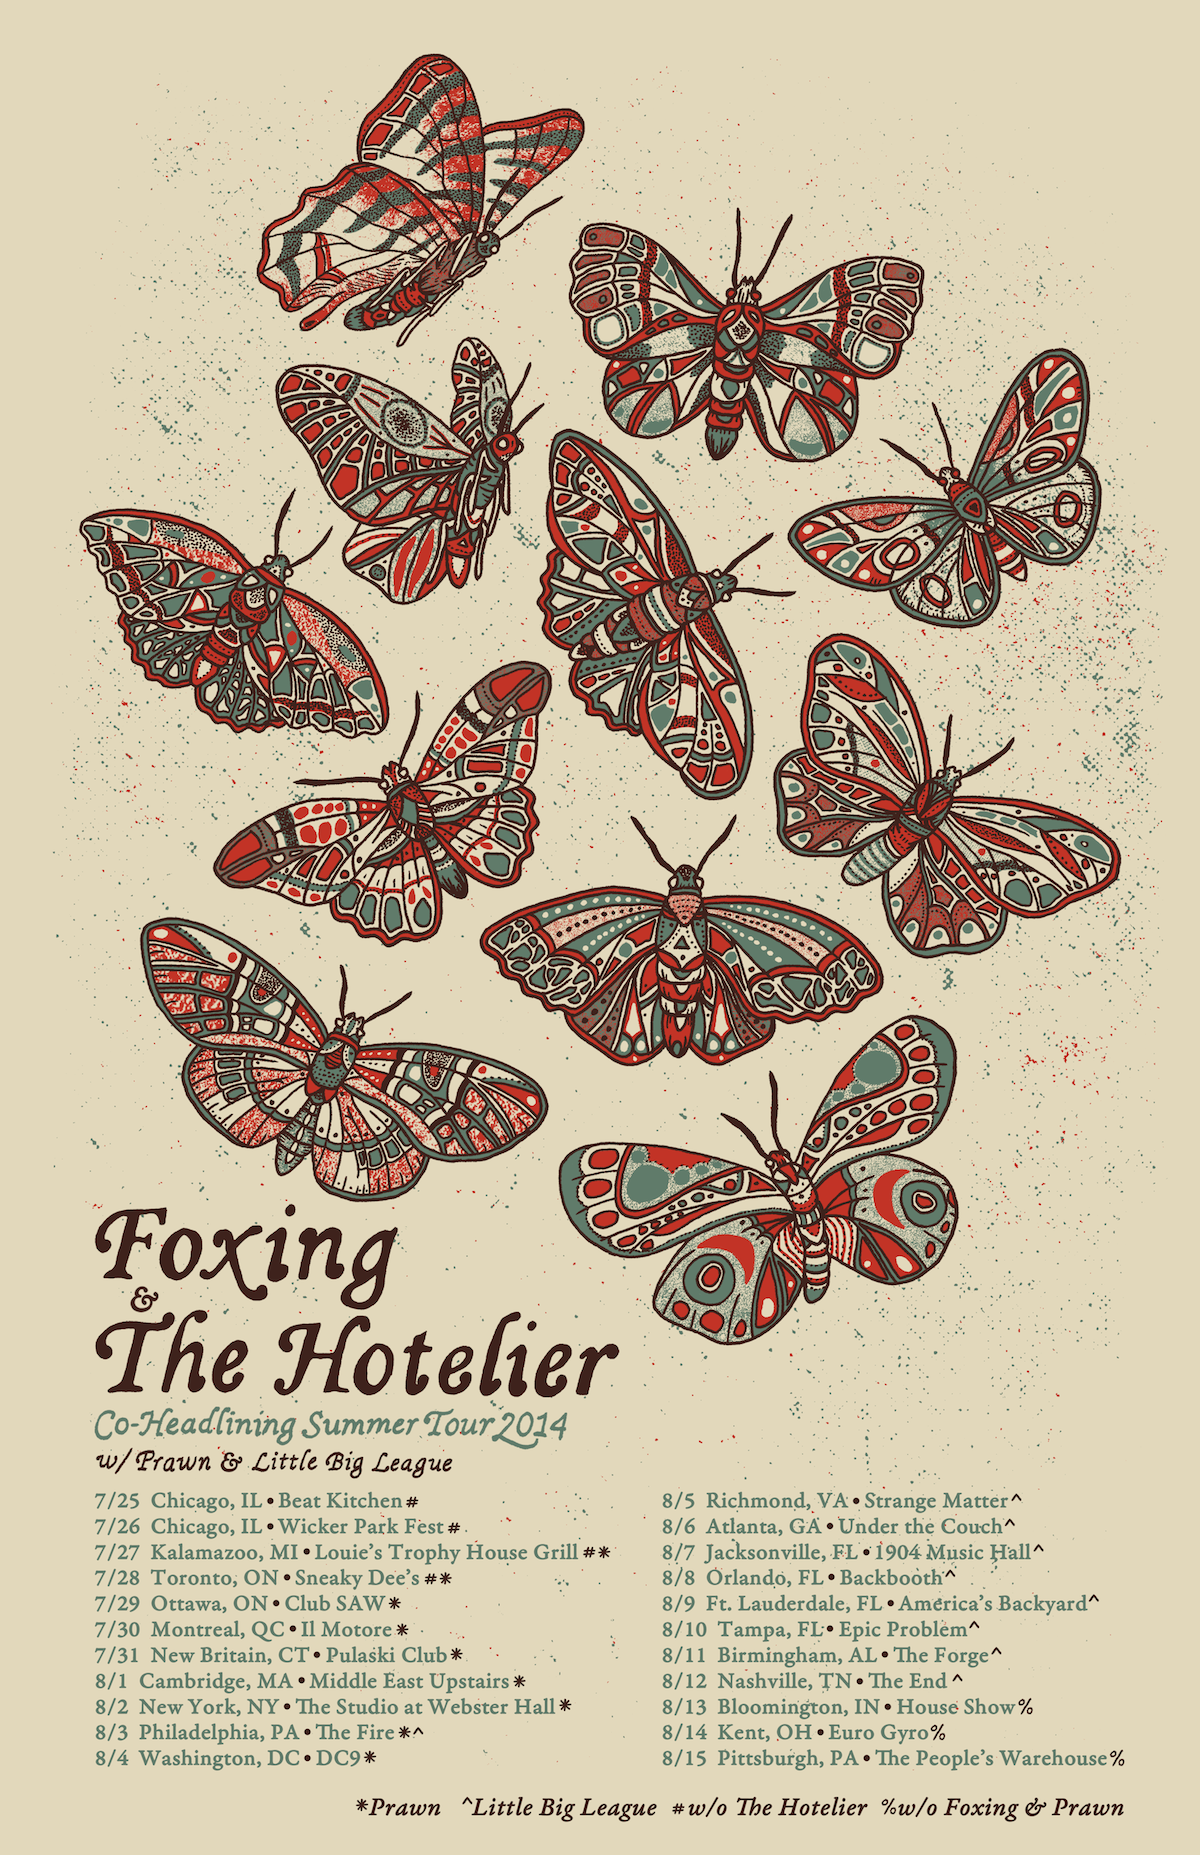 3 color poster designs - Poster Design For Foxing And The Hoteliers 2014 Summer Tour 3 Color Hand